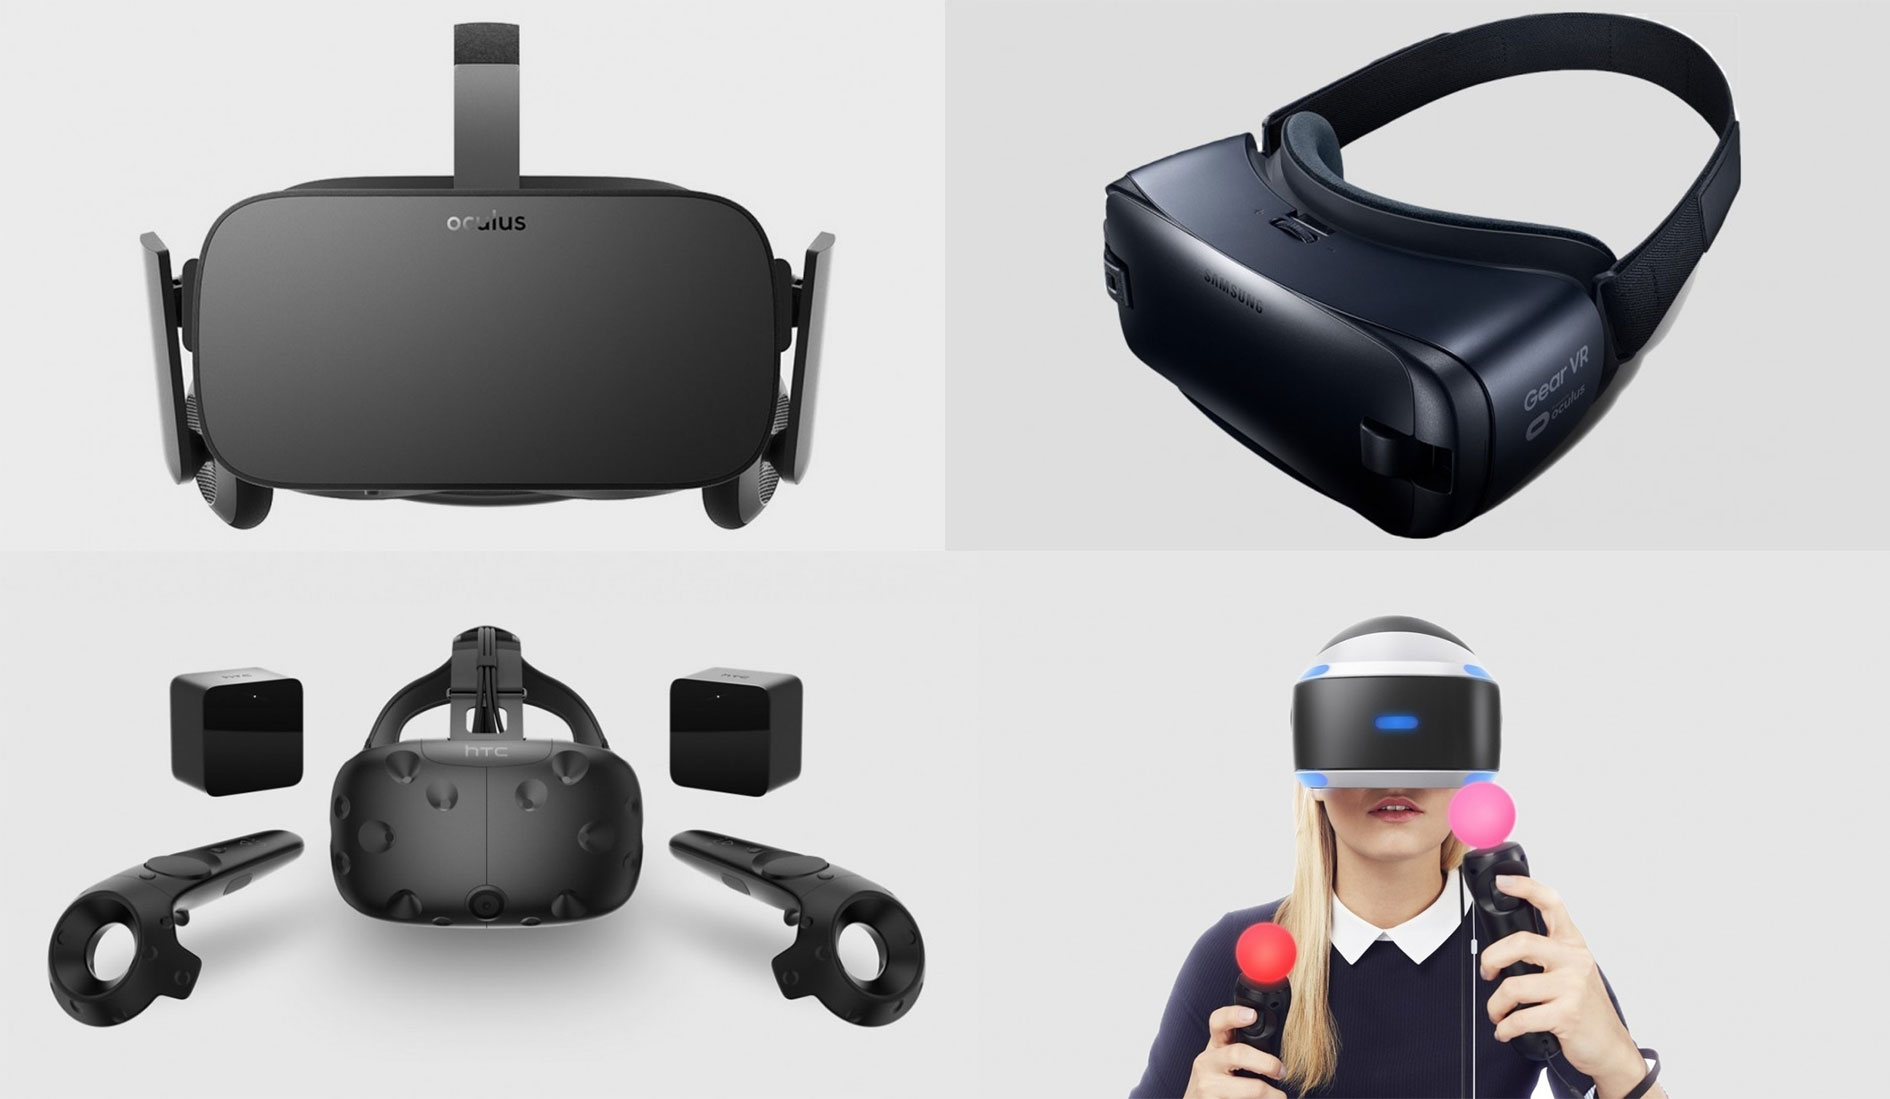 Oculus Rift, Gear VR, HTC Vive, PlayStation VR